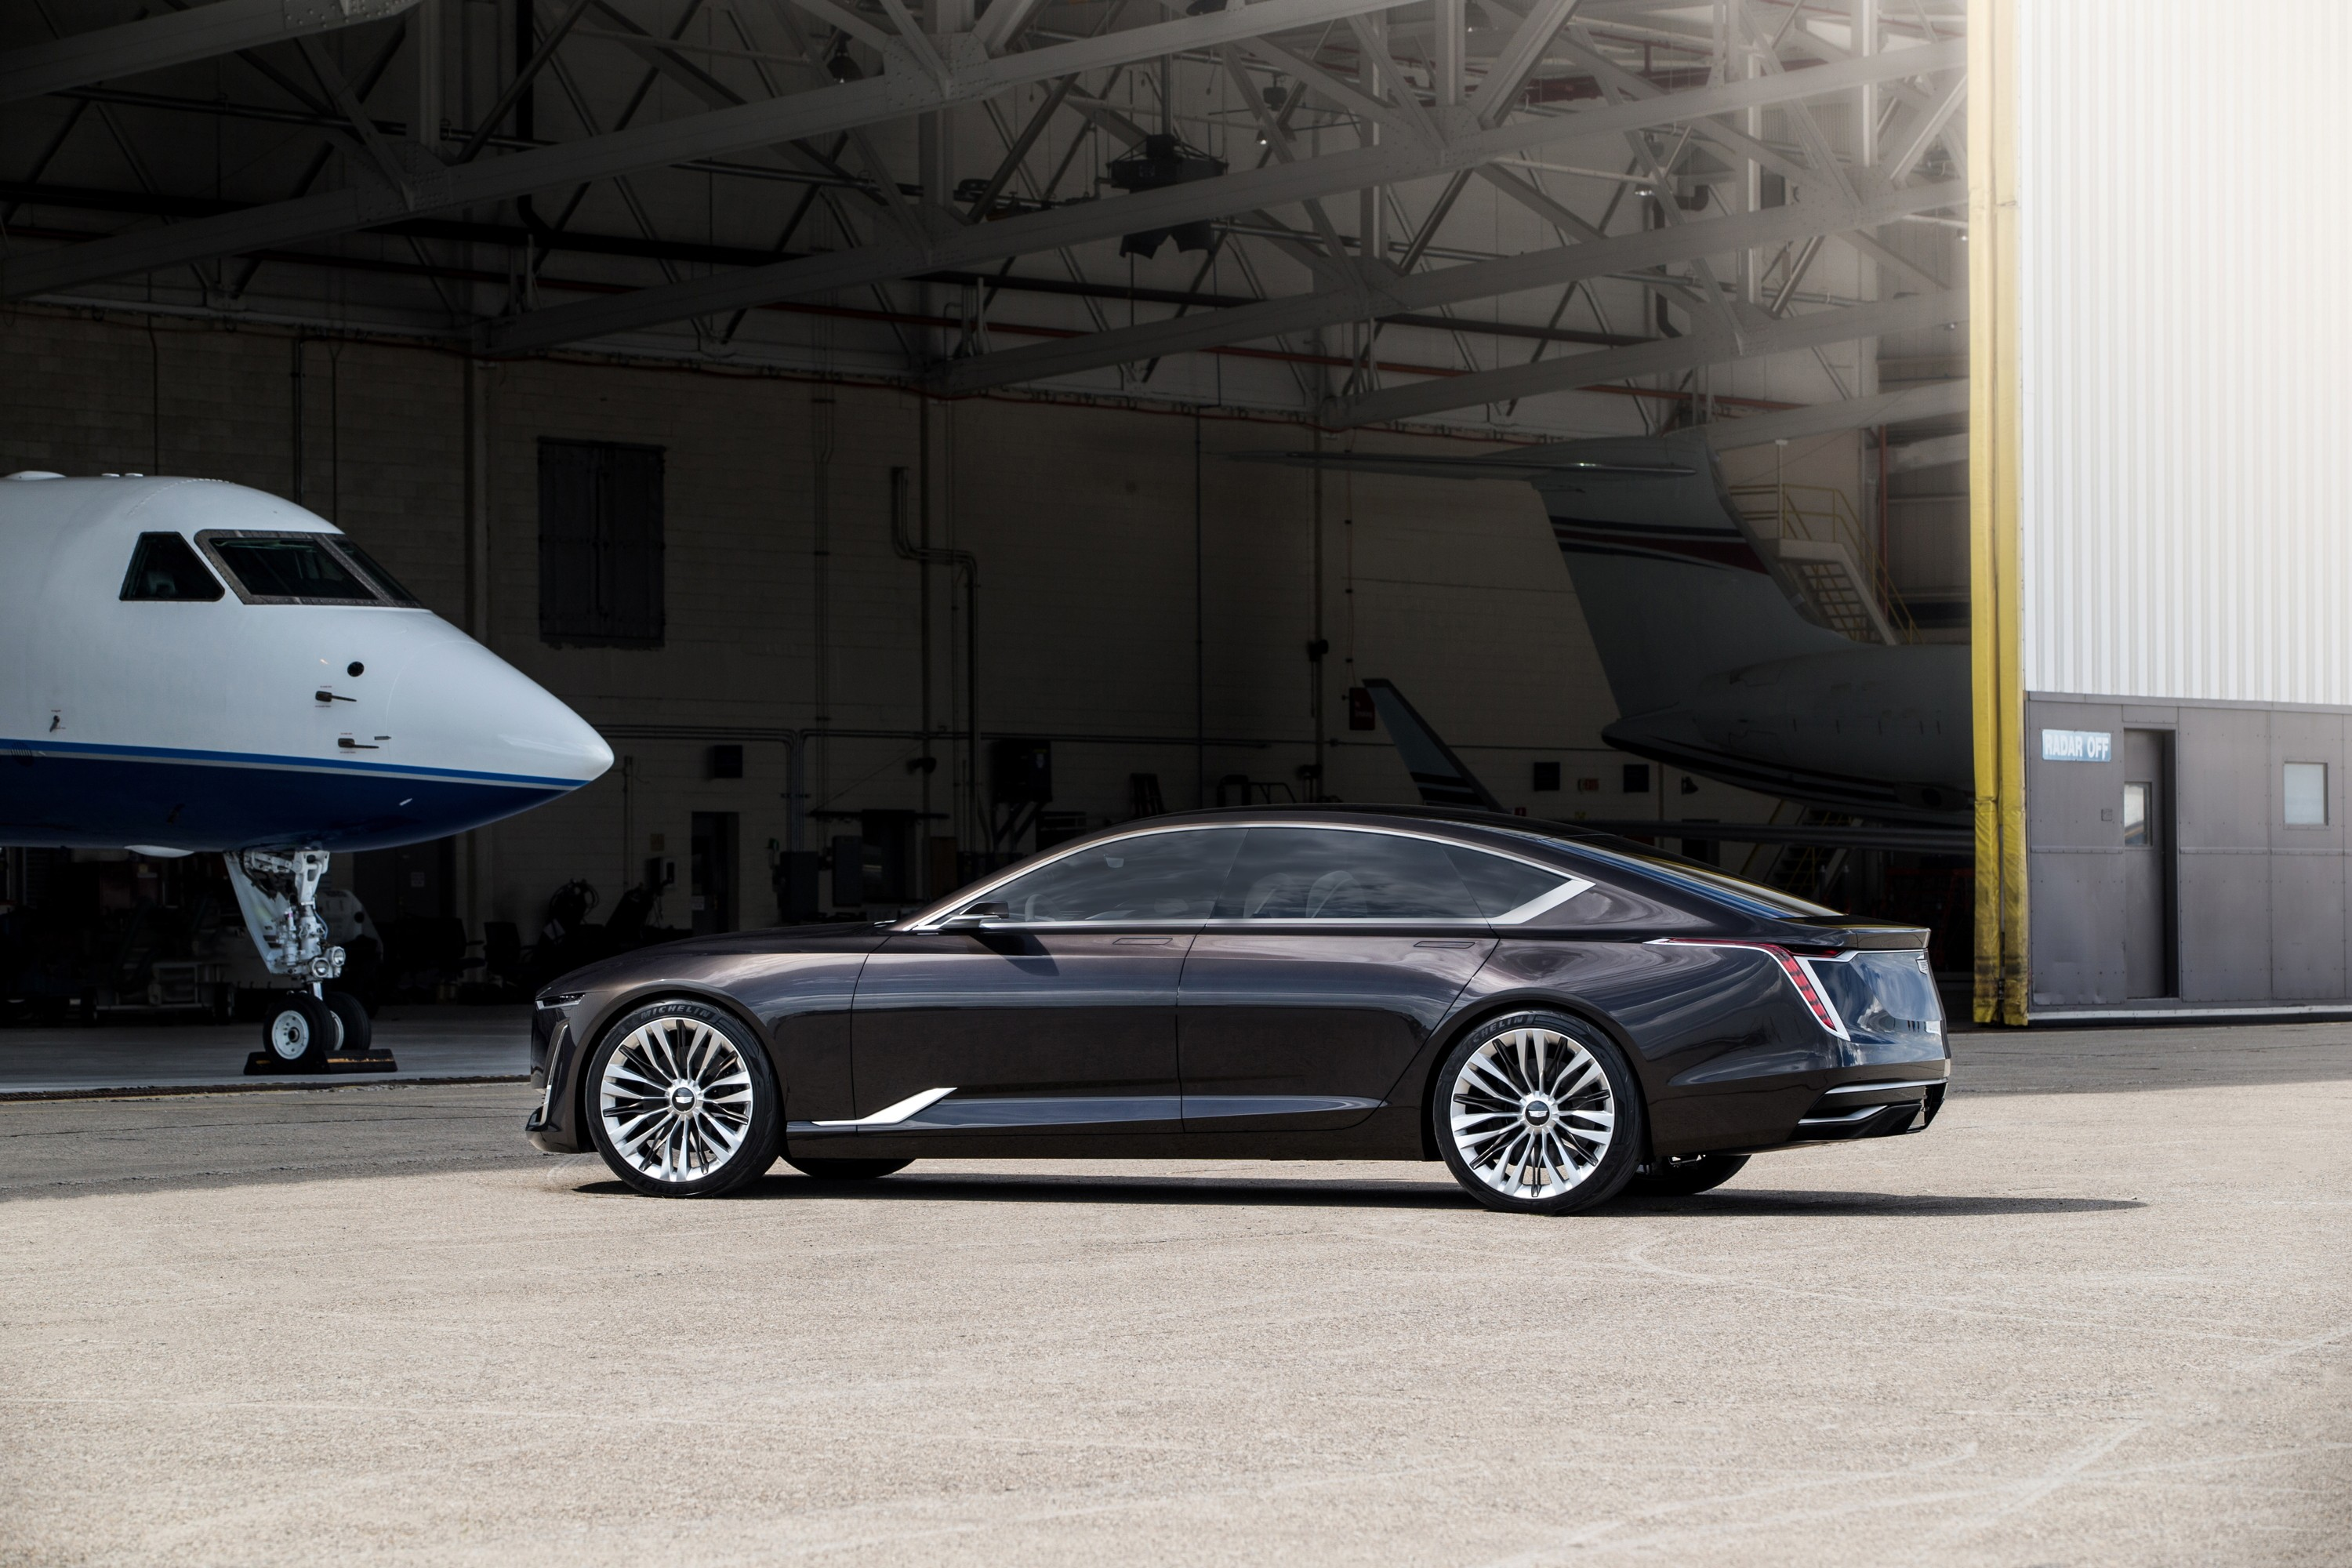 2020 cadillac ct5 sedan will replace ats cts xts. Black Bedroom Furniture Sets. Home Design Ideas